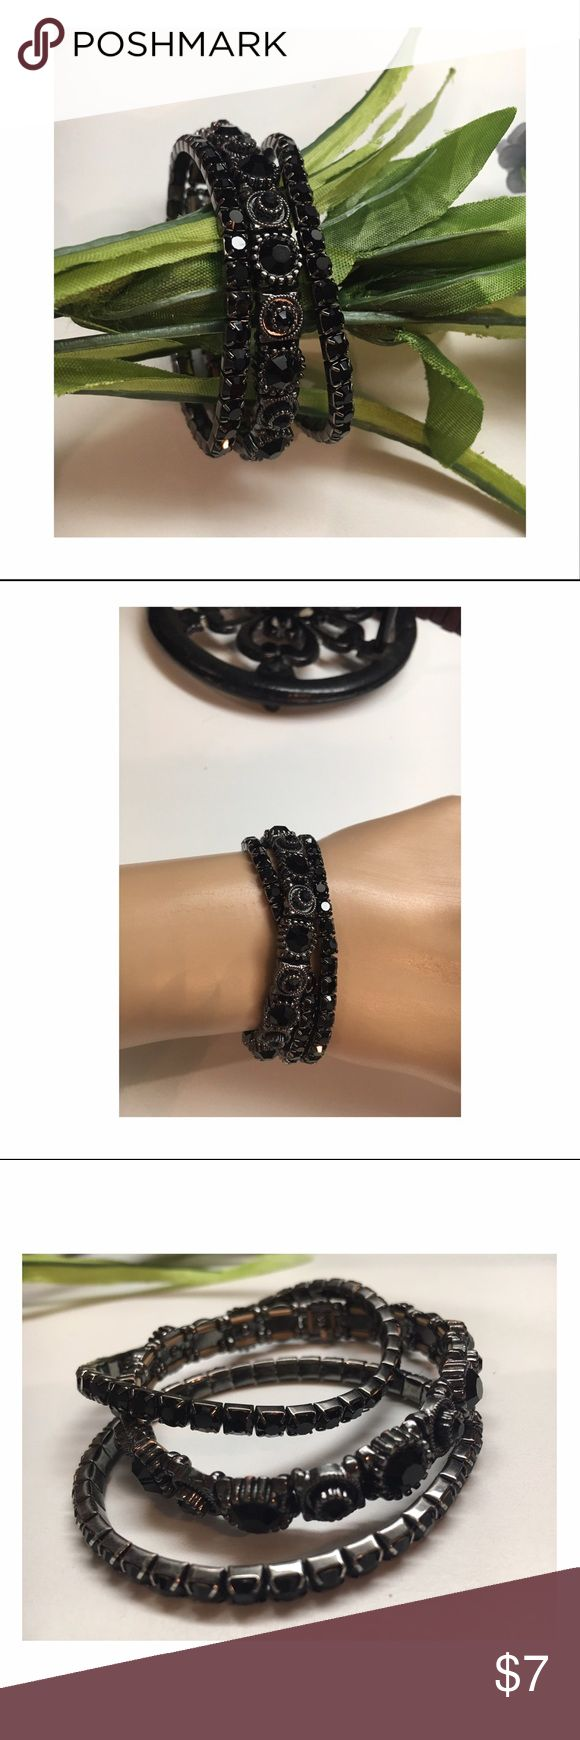 Black Rhinestone Sparkly Bracelets This is a pretty set of three bracelets in black polished resin rhinestones.                                All stones in tact. Stretches onto wrist. Never worn. New! Jewelry Bracelets